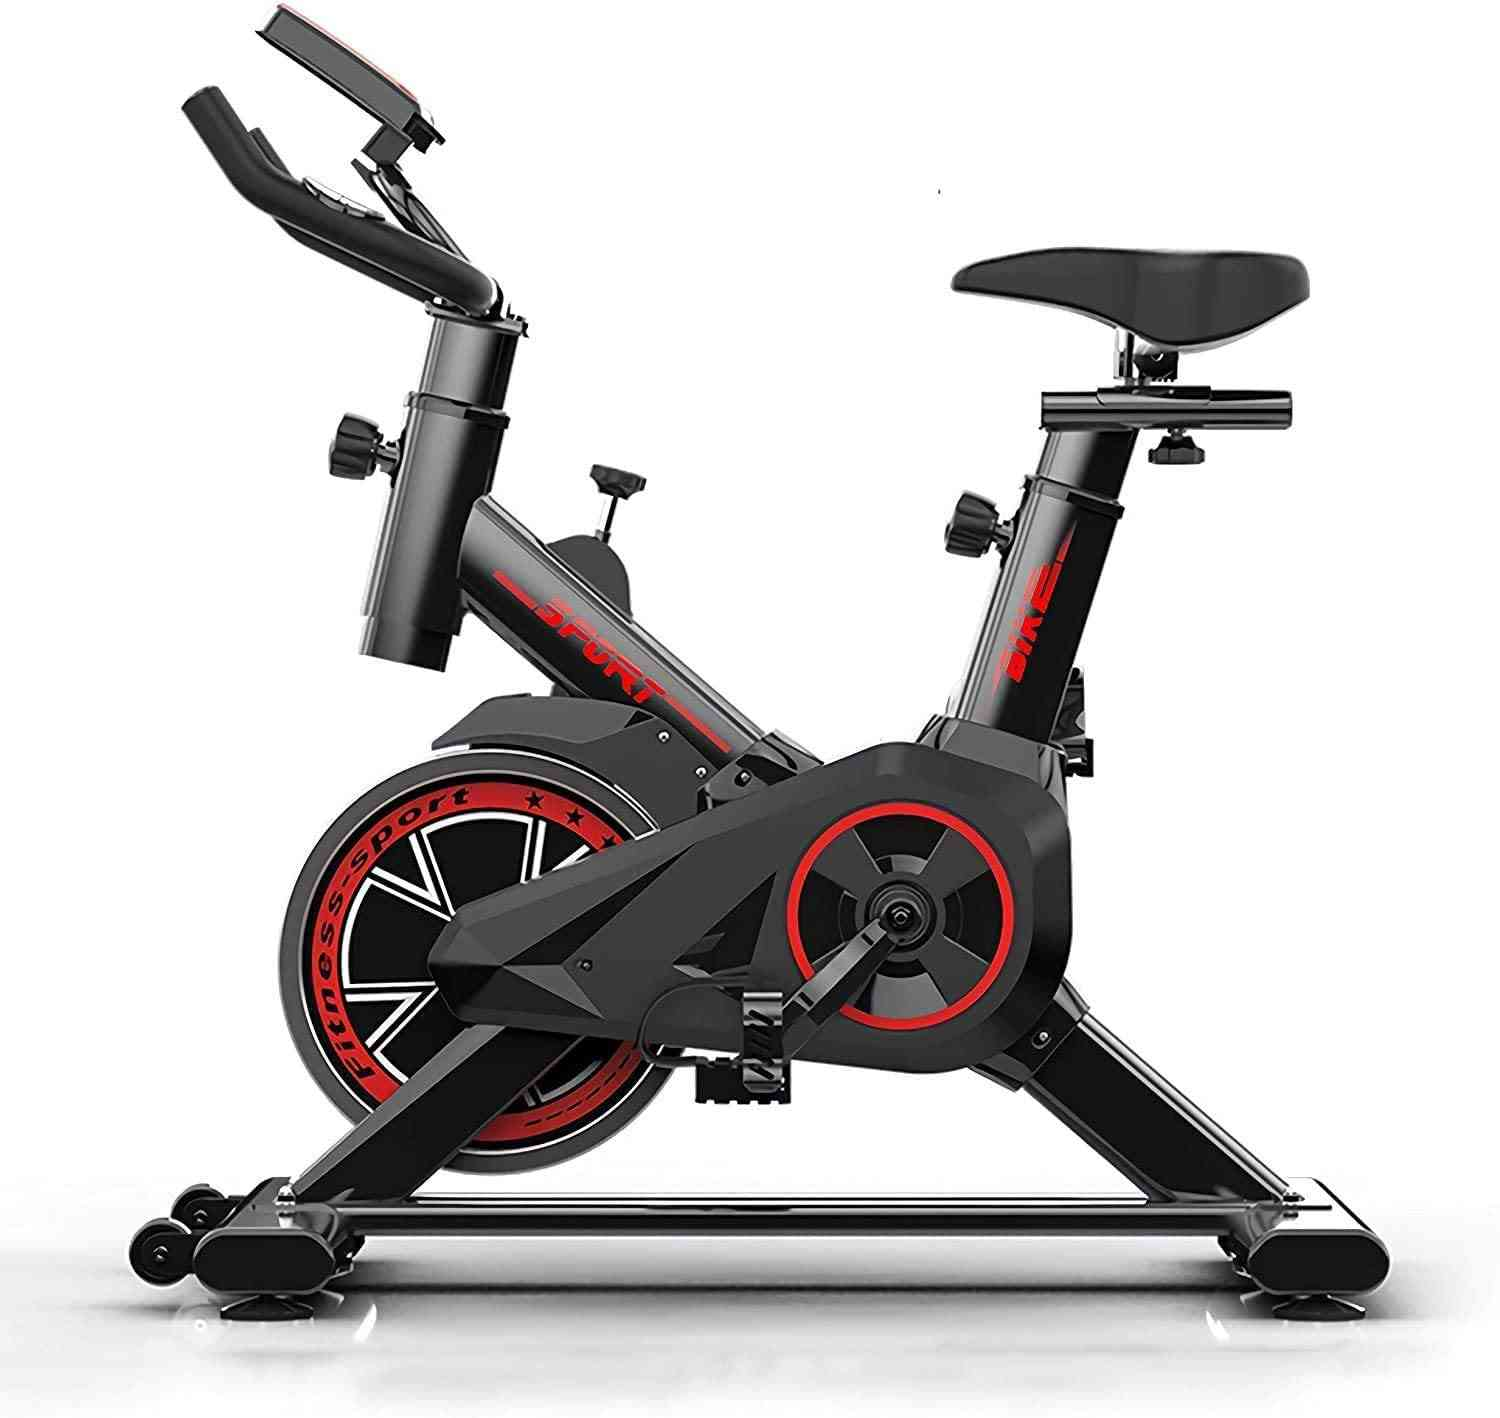 Ultra-quiet Sports Fitness Exercise Bike - Indoor Cycling